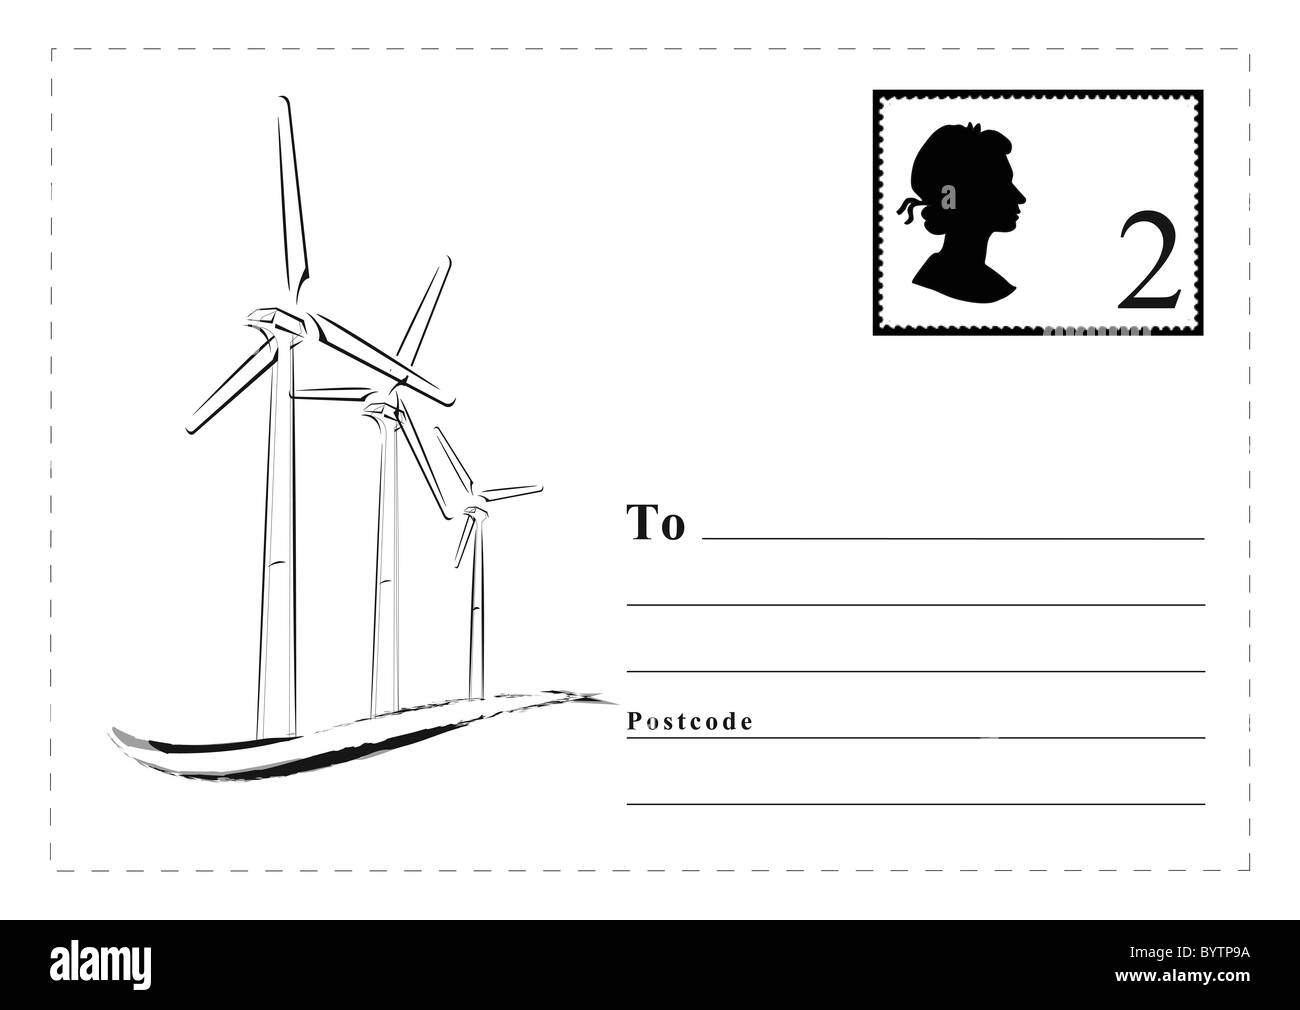 Black and white postcard template, 2st class stamp silhouette of Queen, outlined noted spaces, illustration of energy - Stock Image